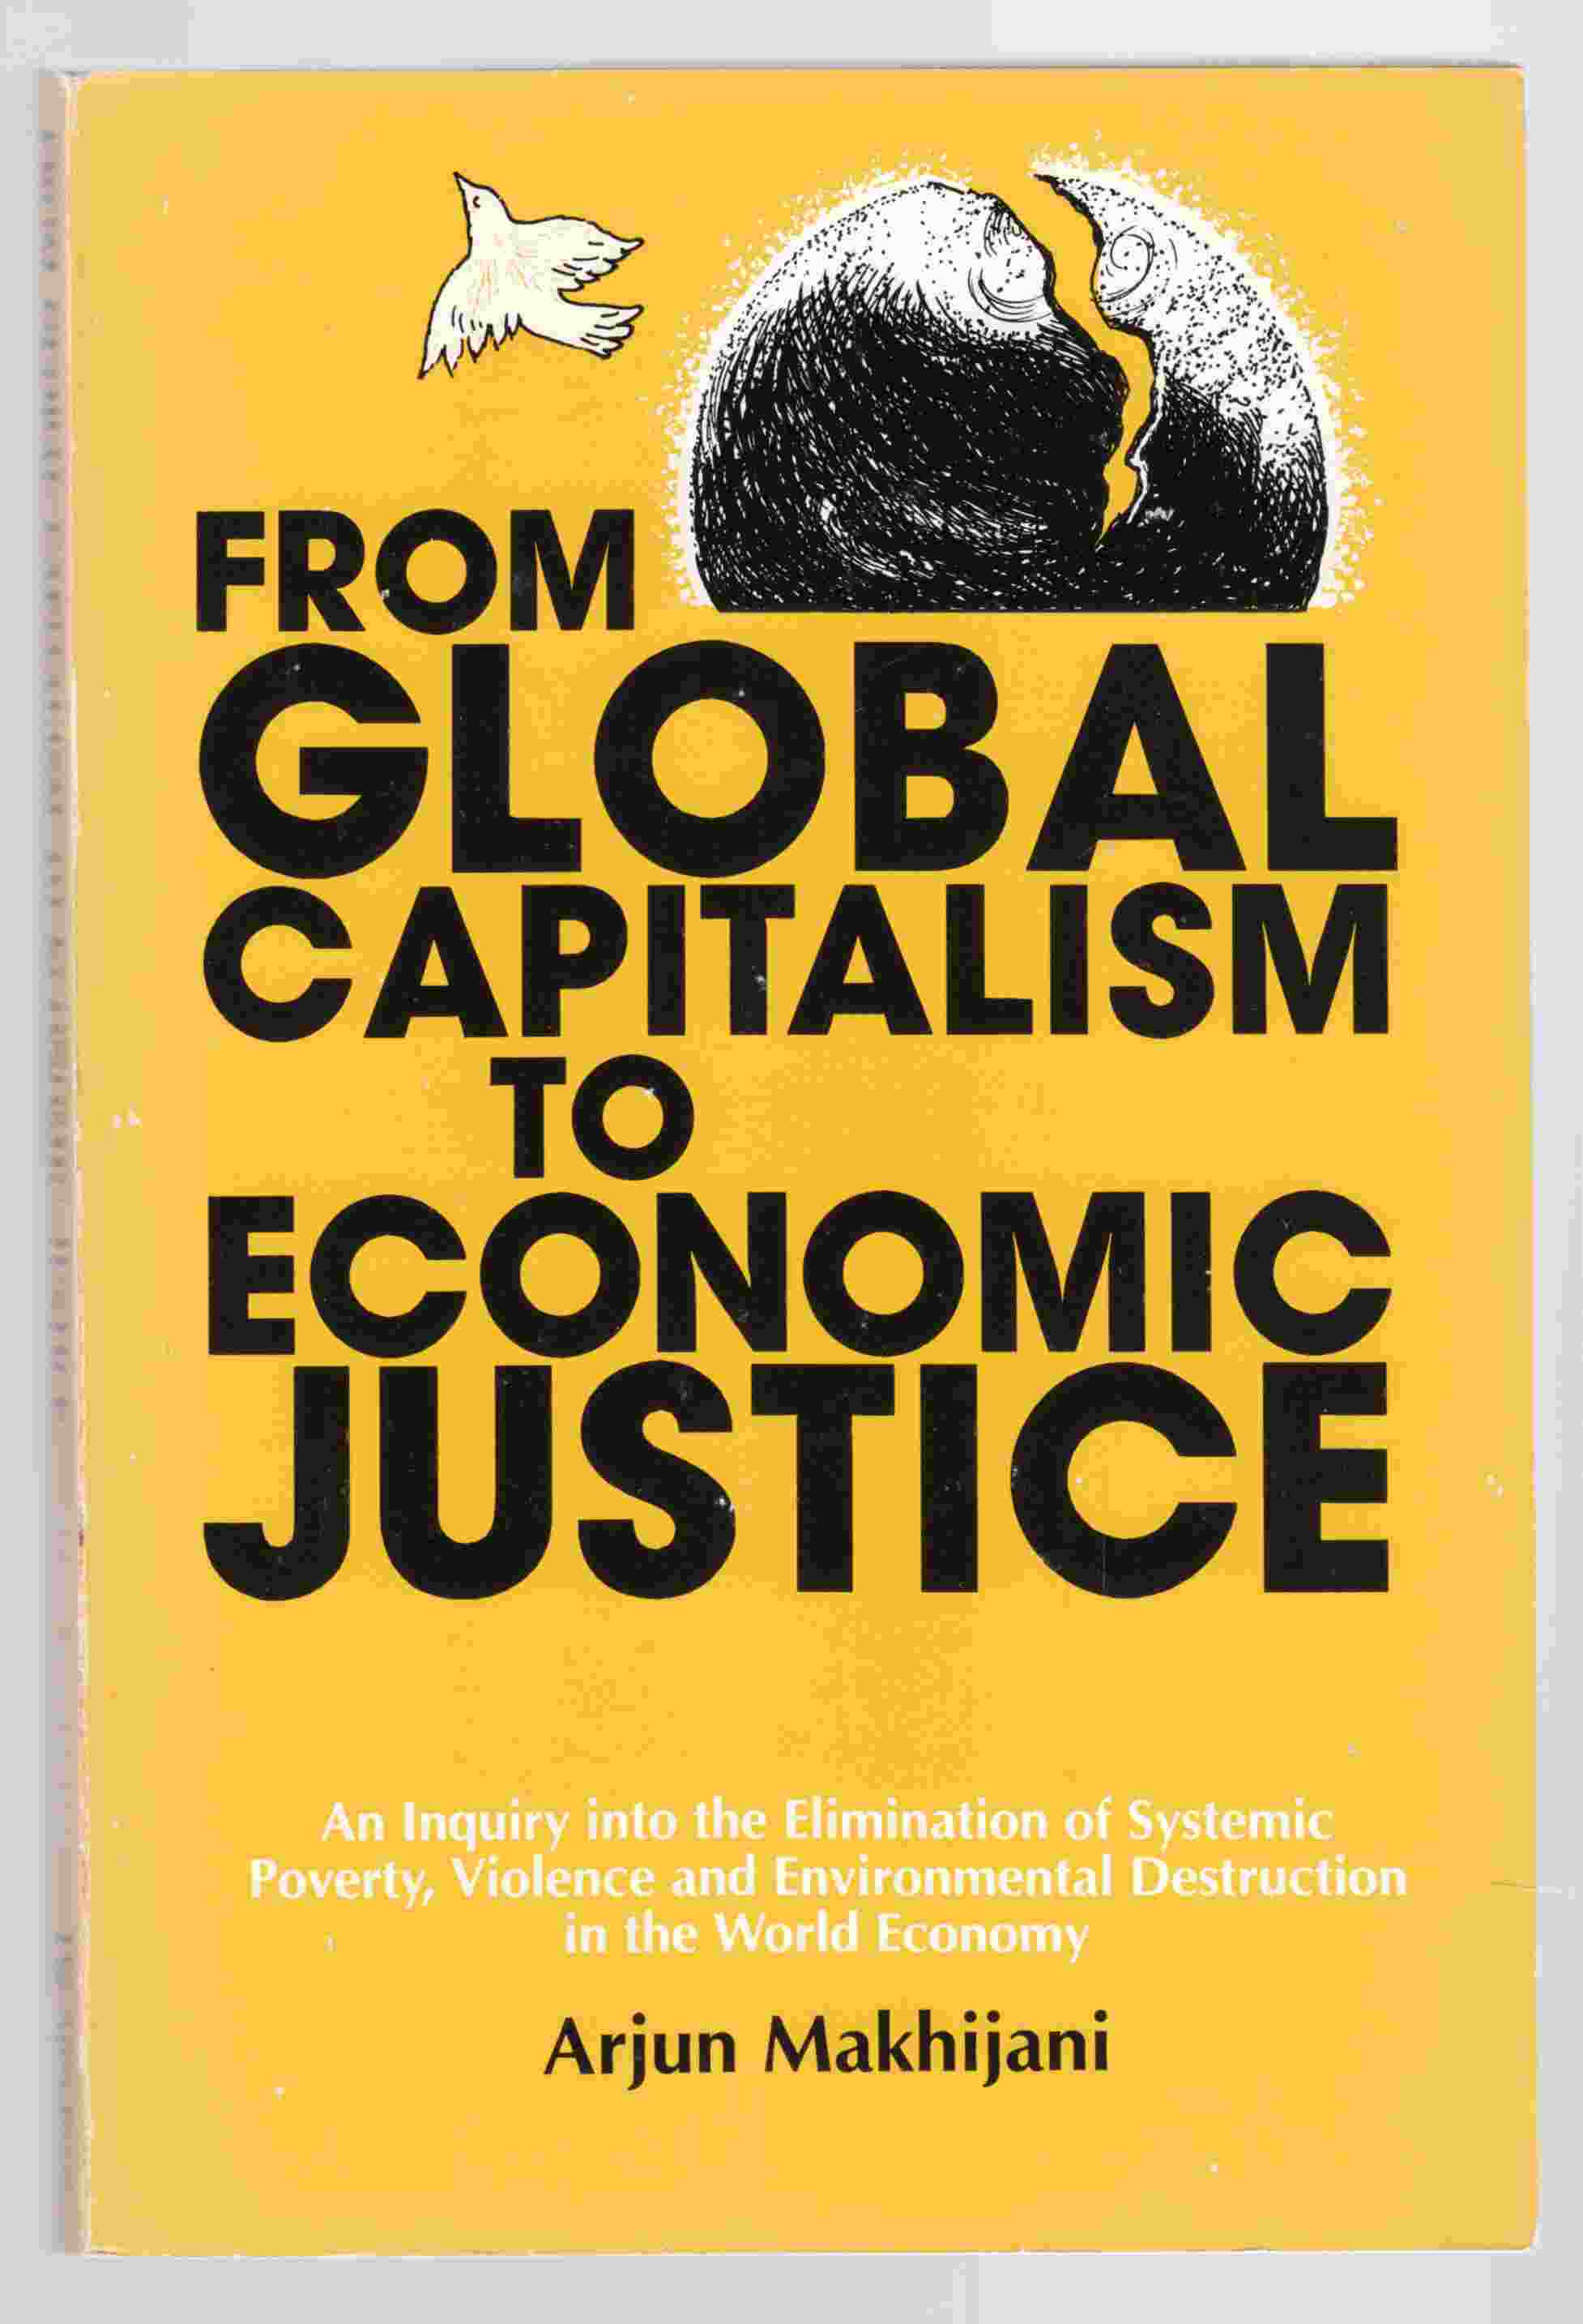 Image for From Global Capitalism to Economic Justice An Inquiry Into the Elimination of Systemic Poverty, Violence and Economic Destruction in the World Economy